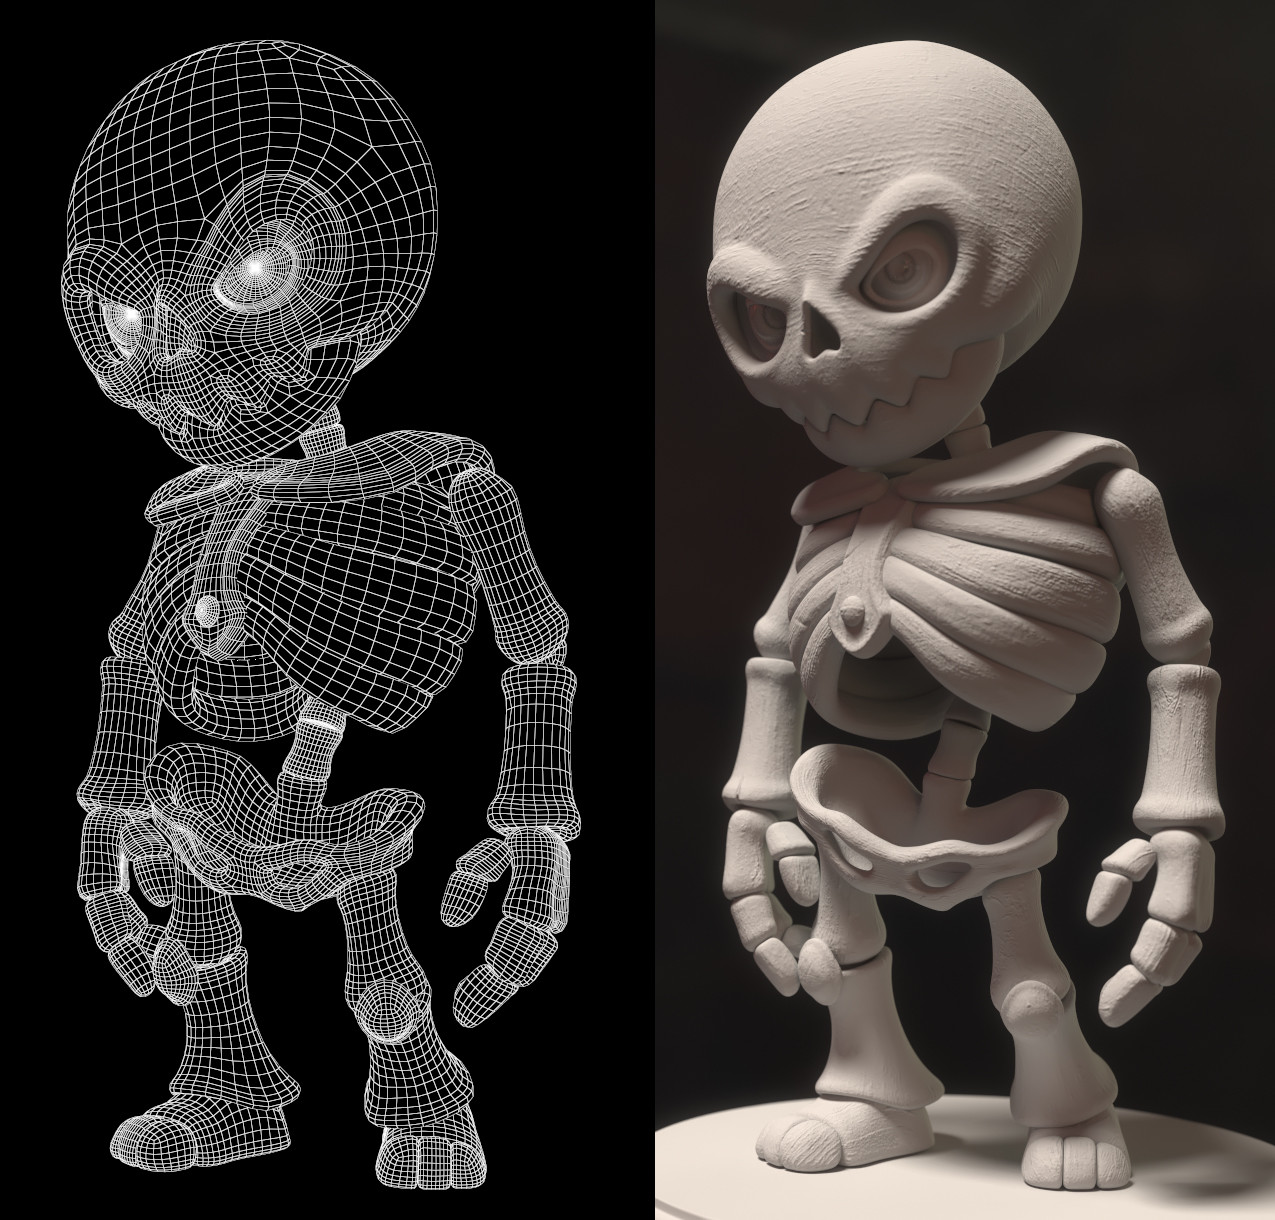 Wireframe and grey version